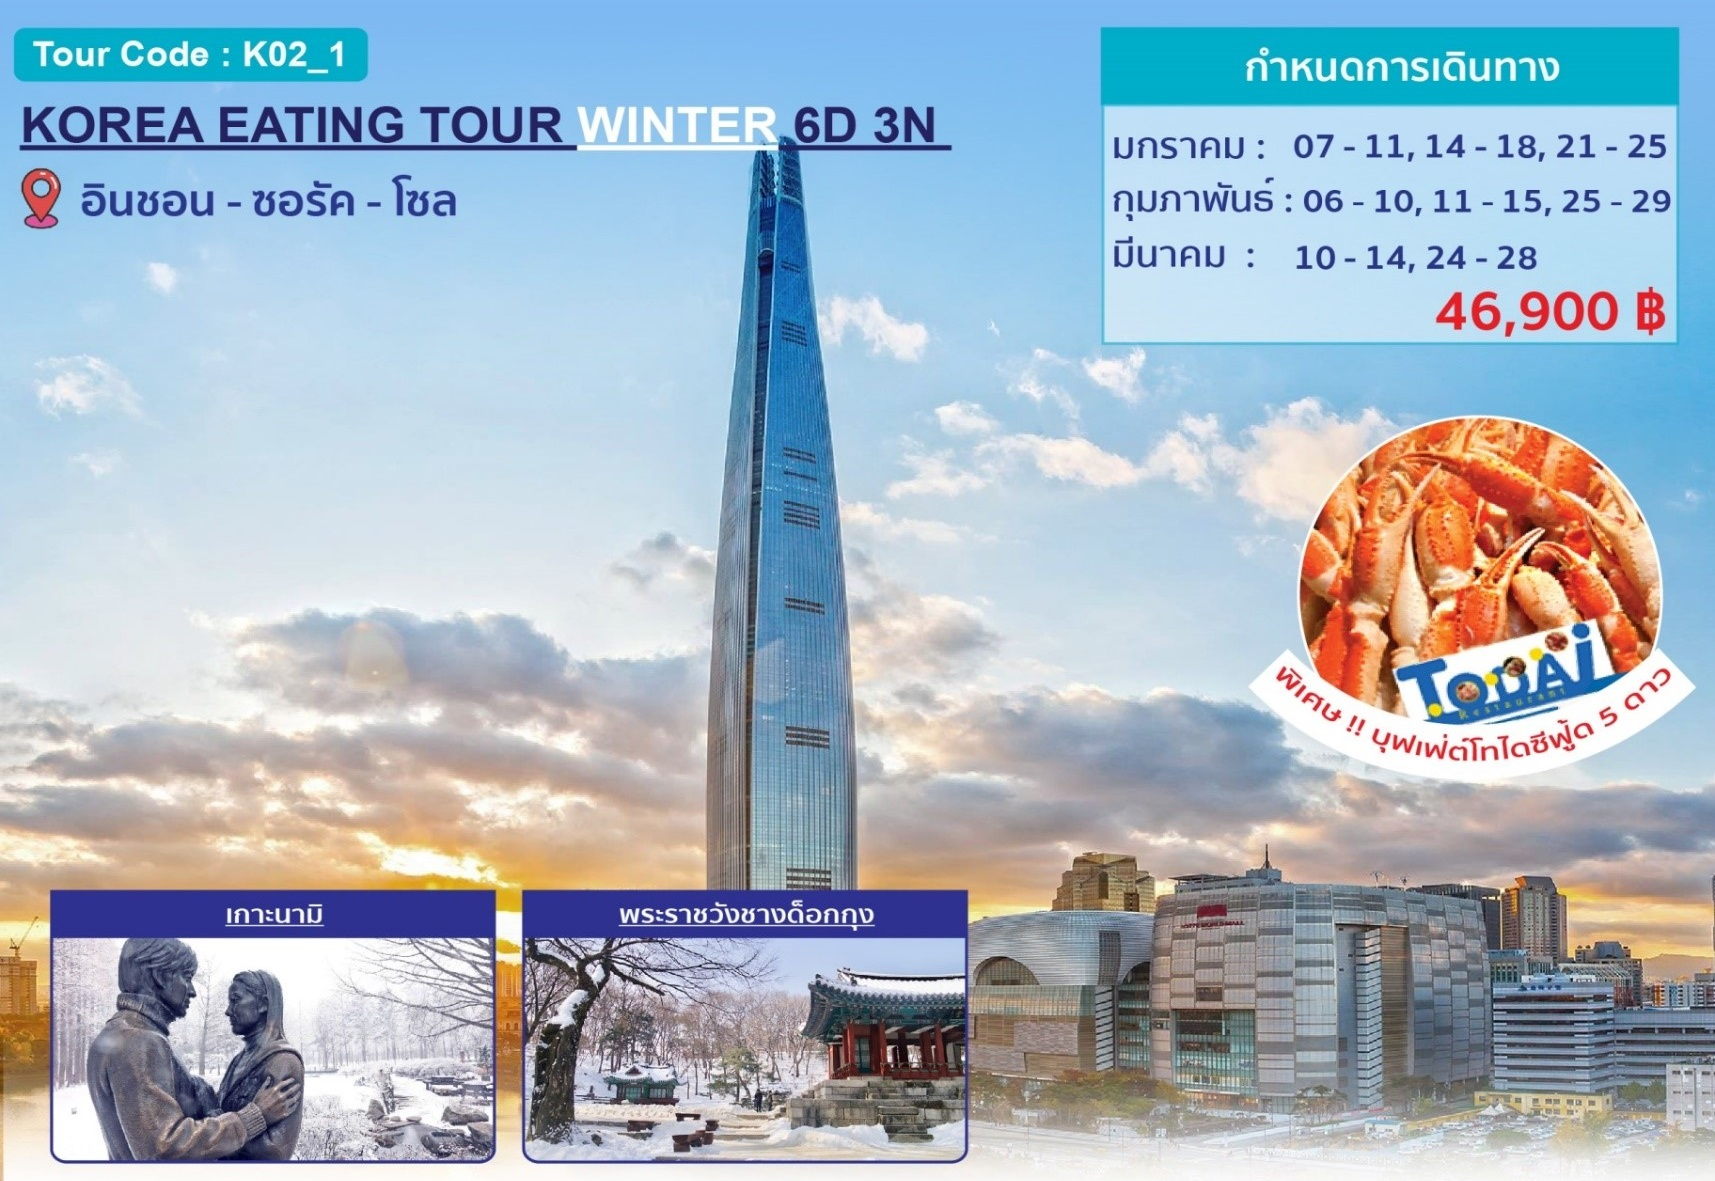 ทัวร์เกาหลี-KOREA-EATING-TOUR-WINTER-5D-3N(TG)-(JAN-MAR20)-(K02_1)